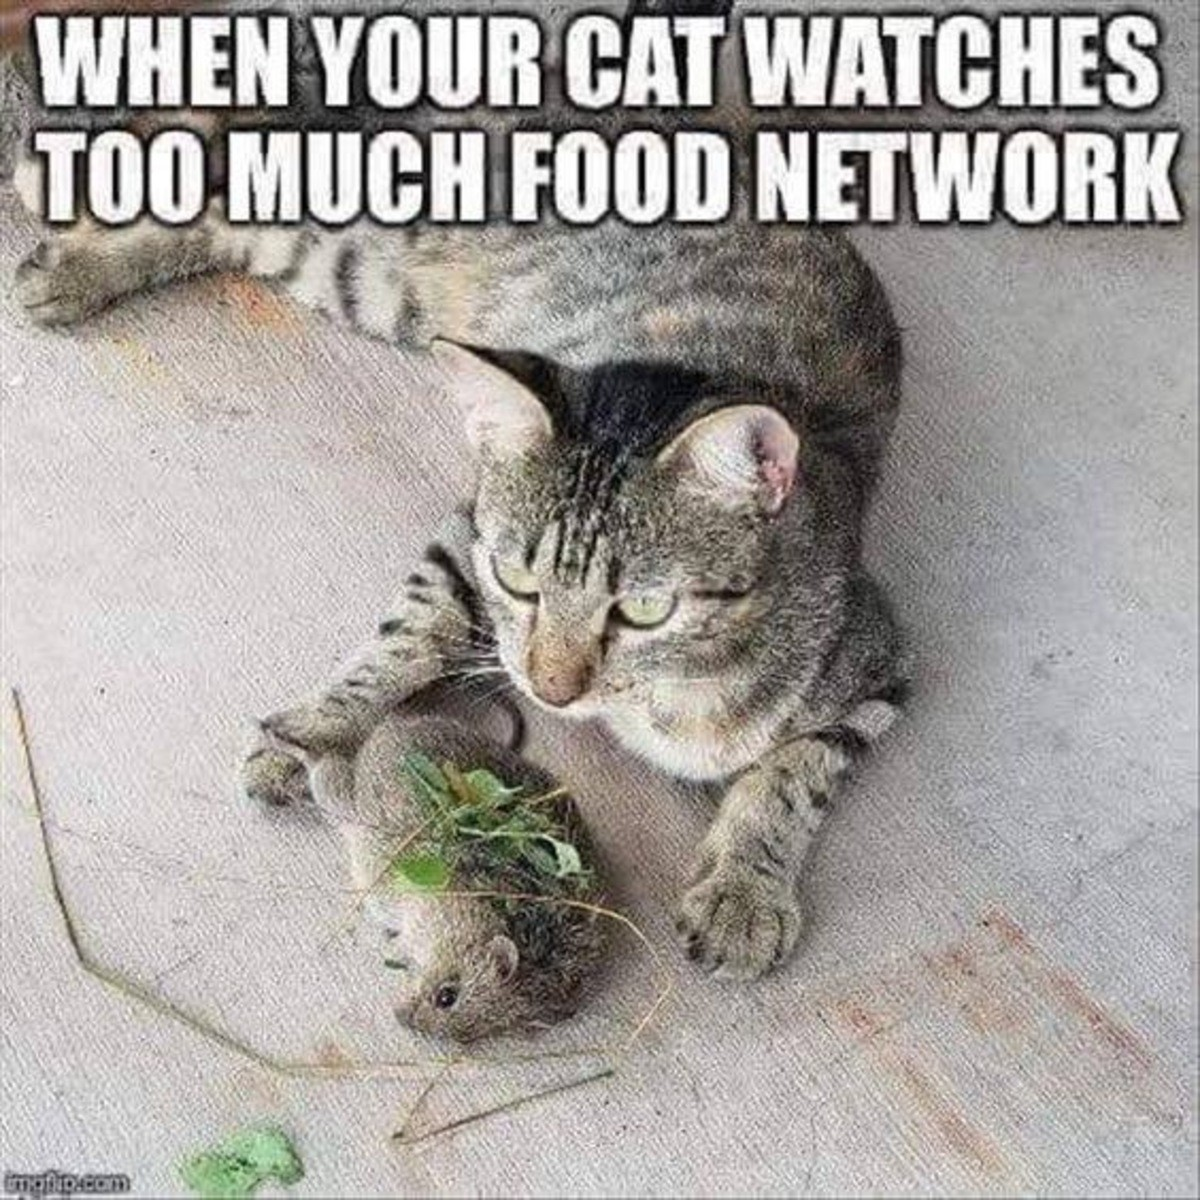 To much food network. .